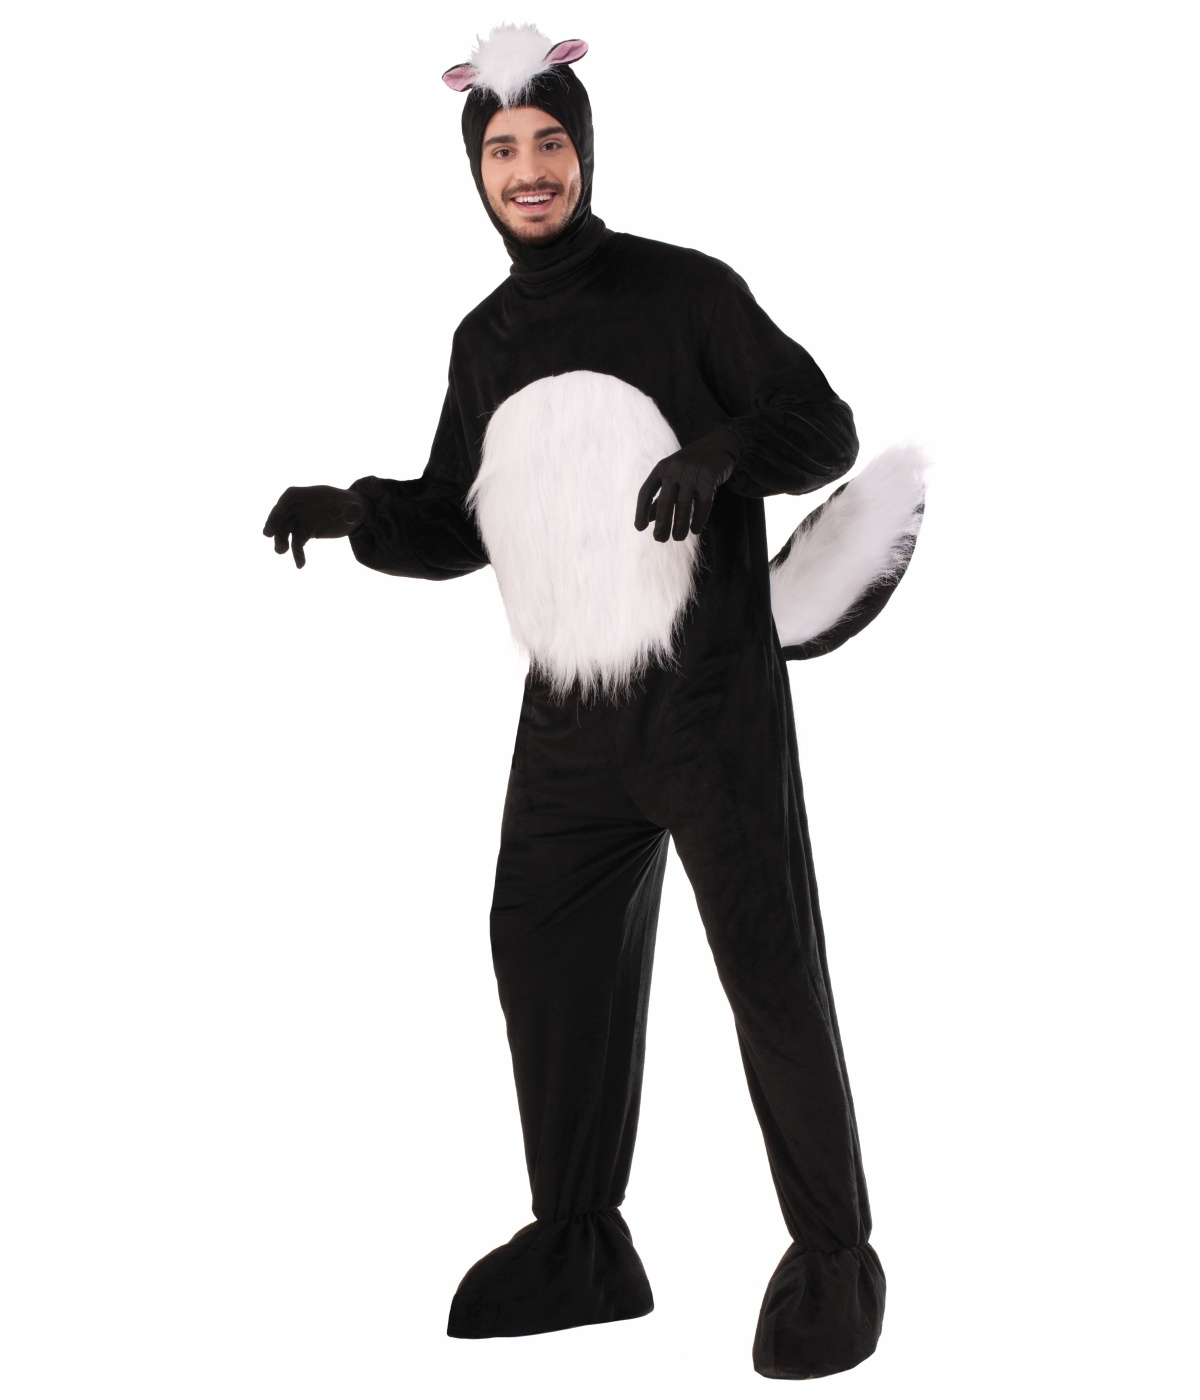 Stunk Skunk Mascot Costume Animal Costumes